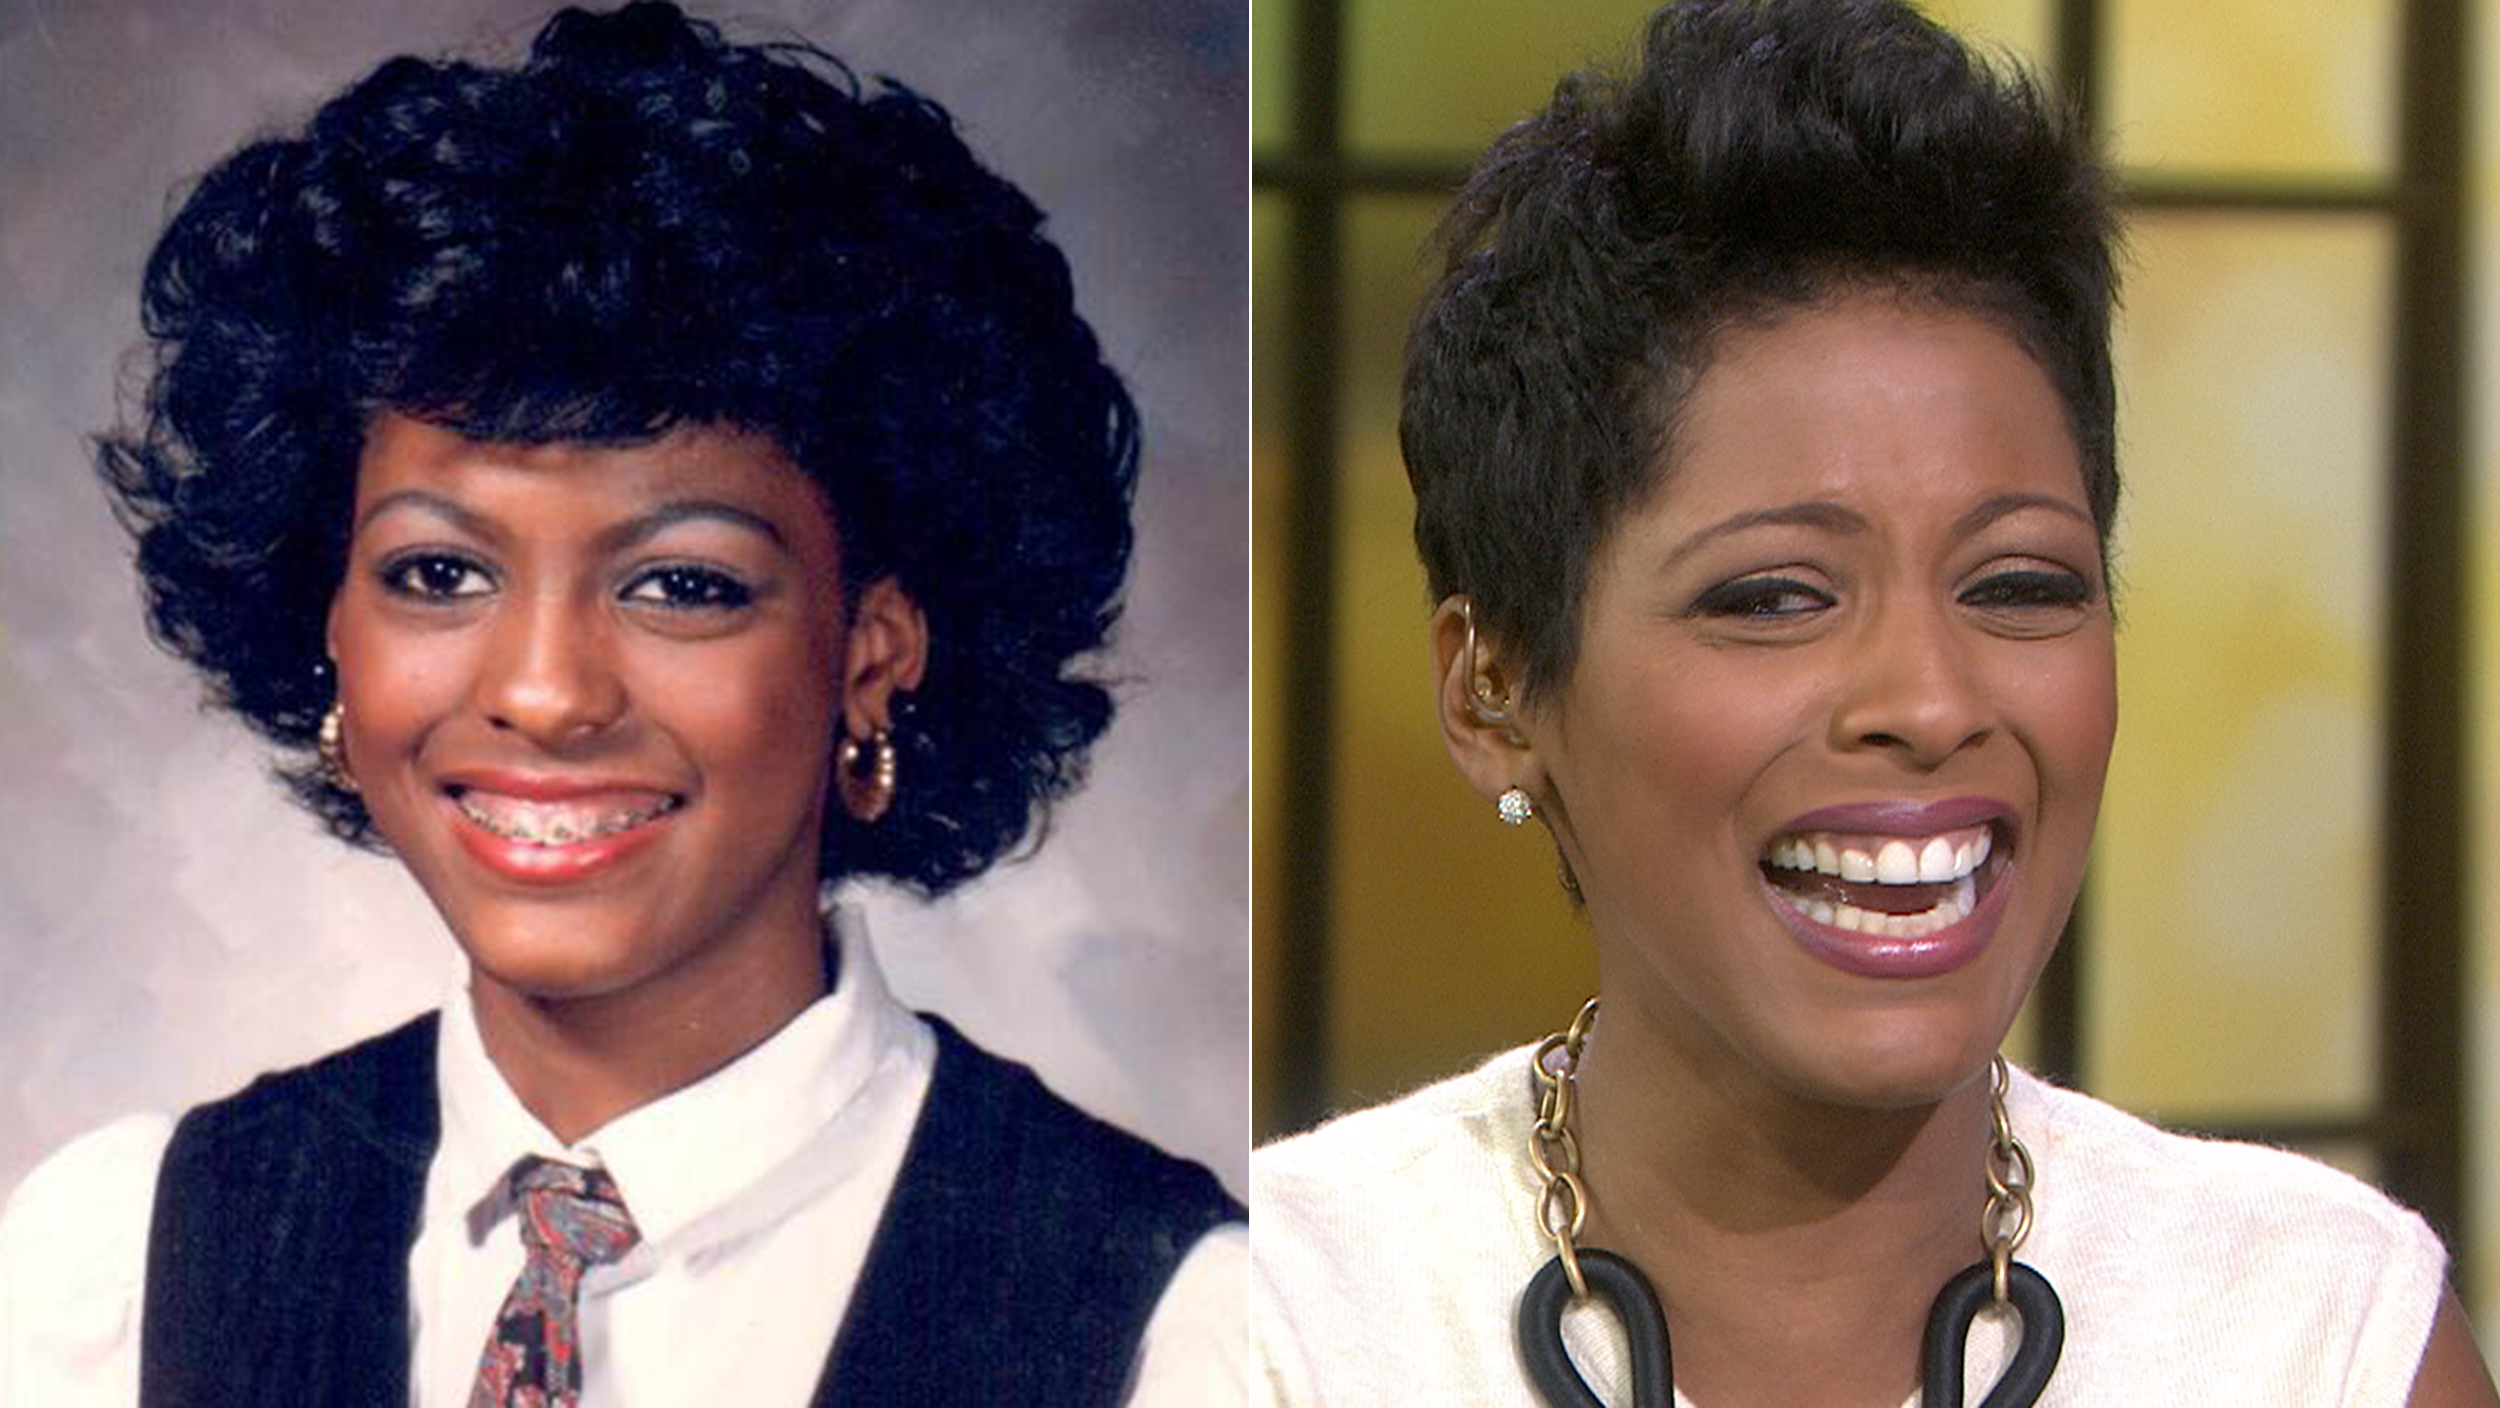 Tamron Hall gasps at the sight of an old school photo